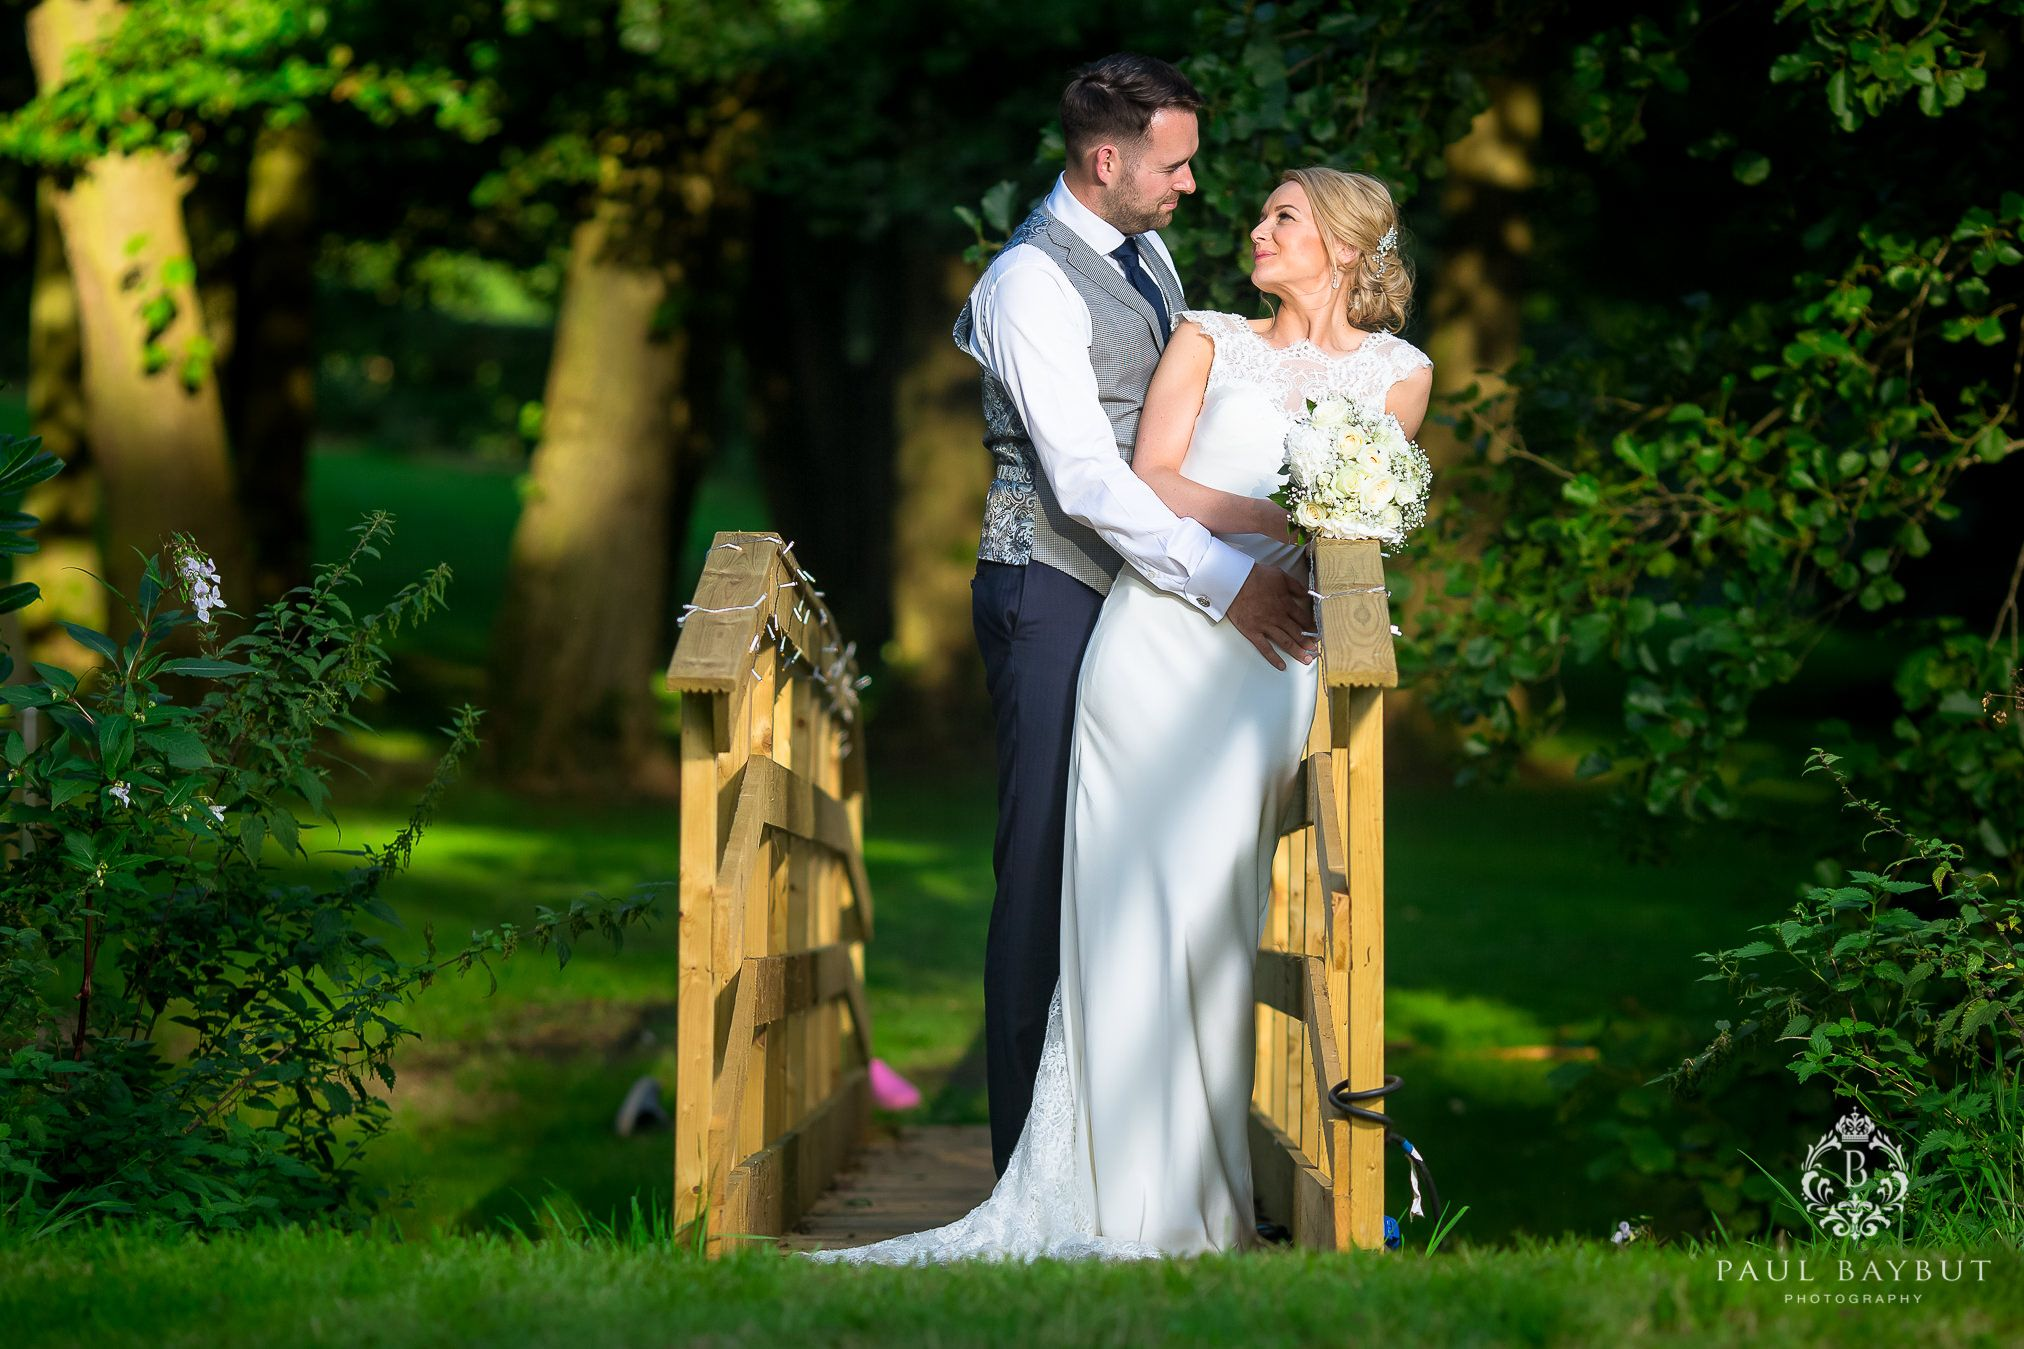 Bride and groom standing on a wooden bridge in the garden of their Cheshire marquee wedding